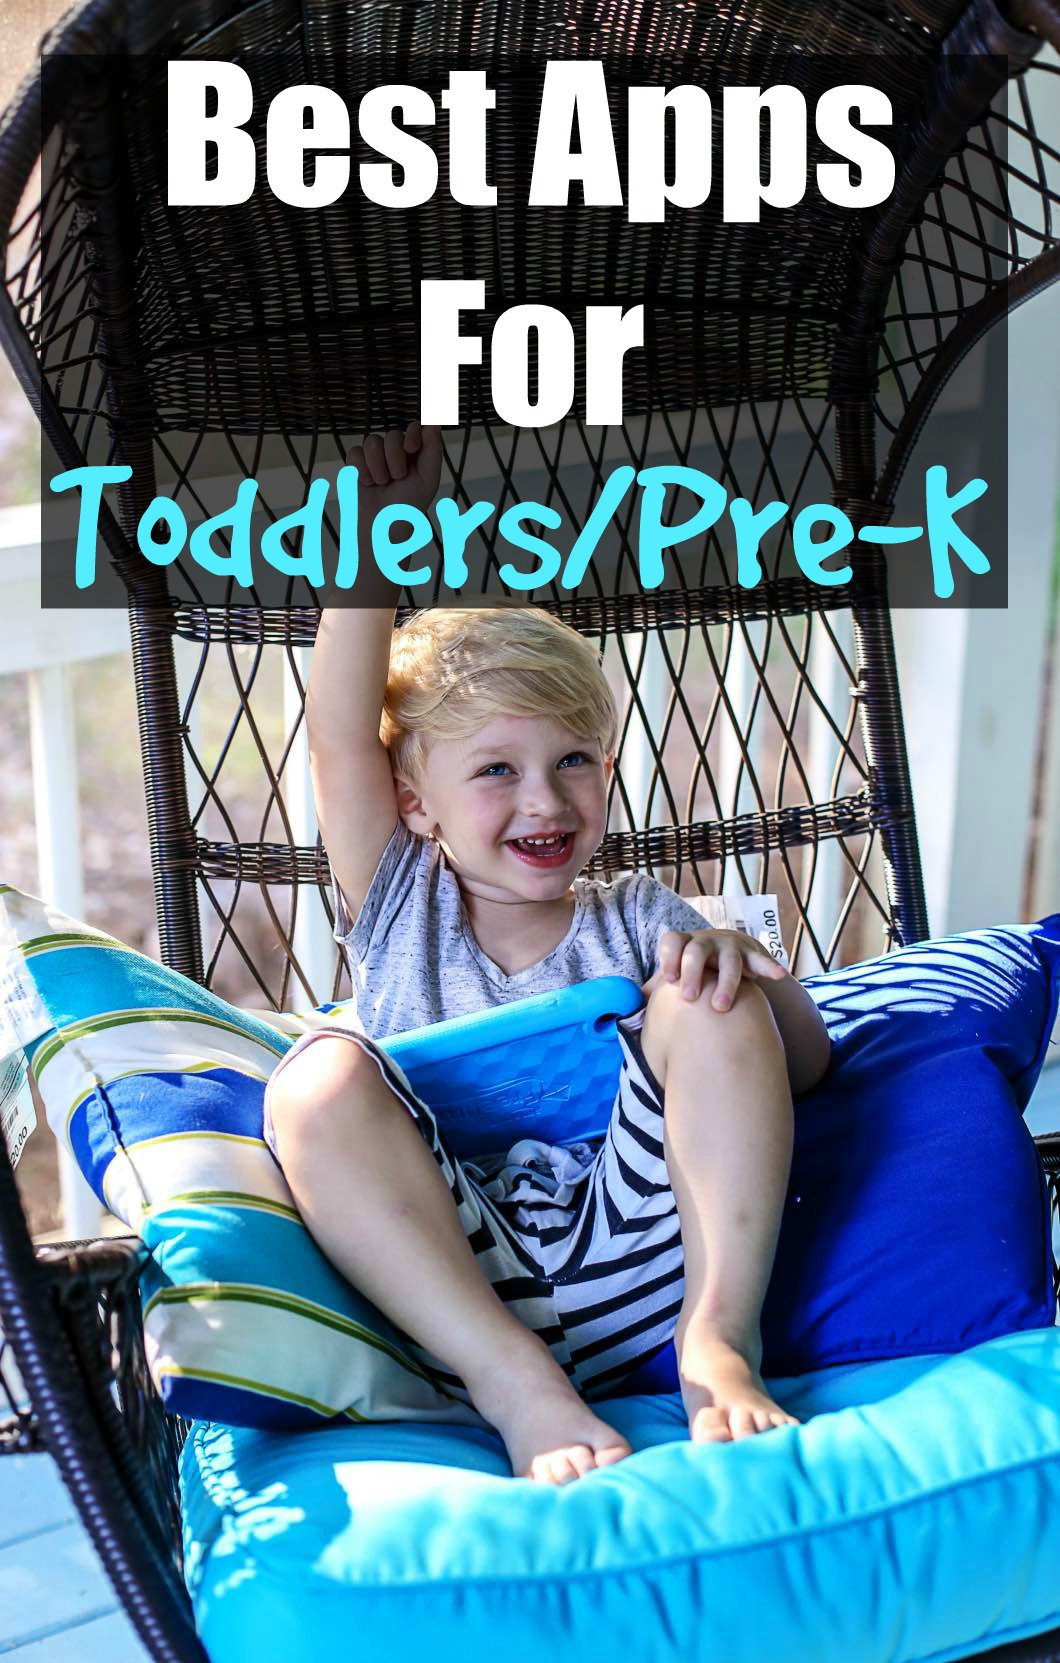 Best Apps for Toddlers/Pre-K